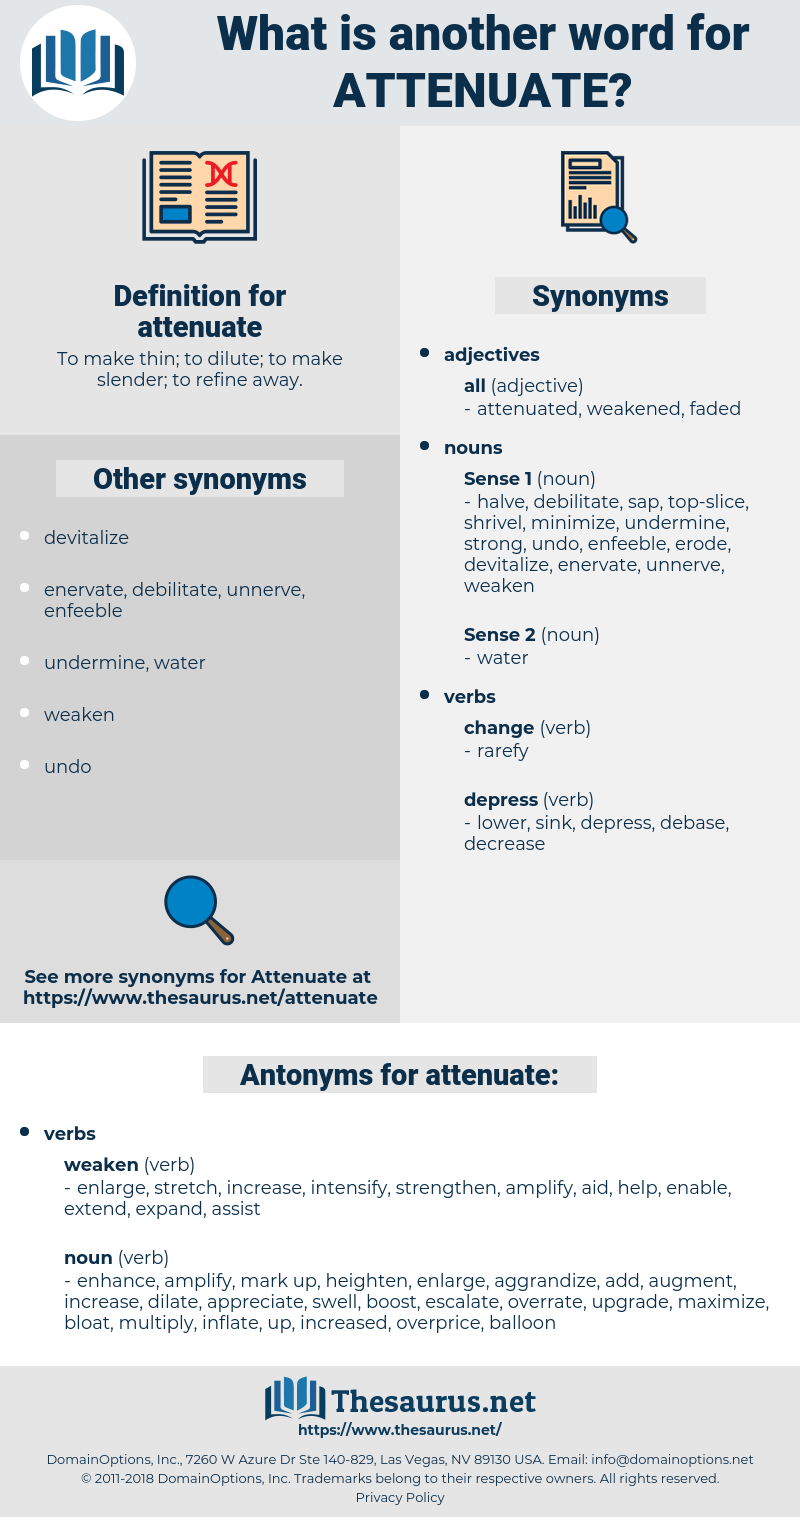 attenuate, synonym attenuate, another word for attenuate, words like attenuate, thesaurus attenuate